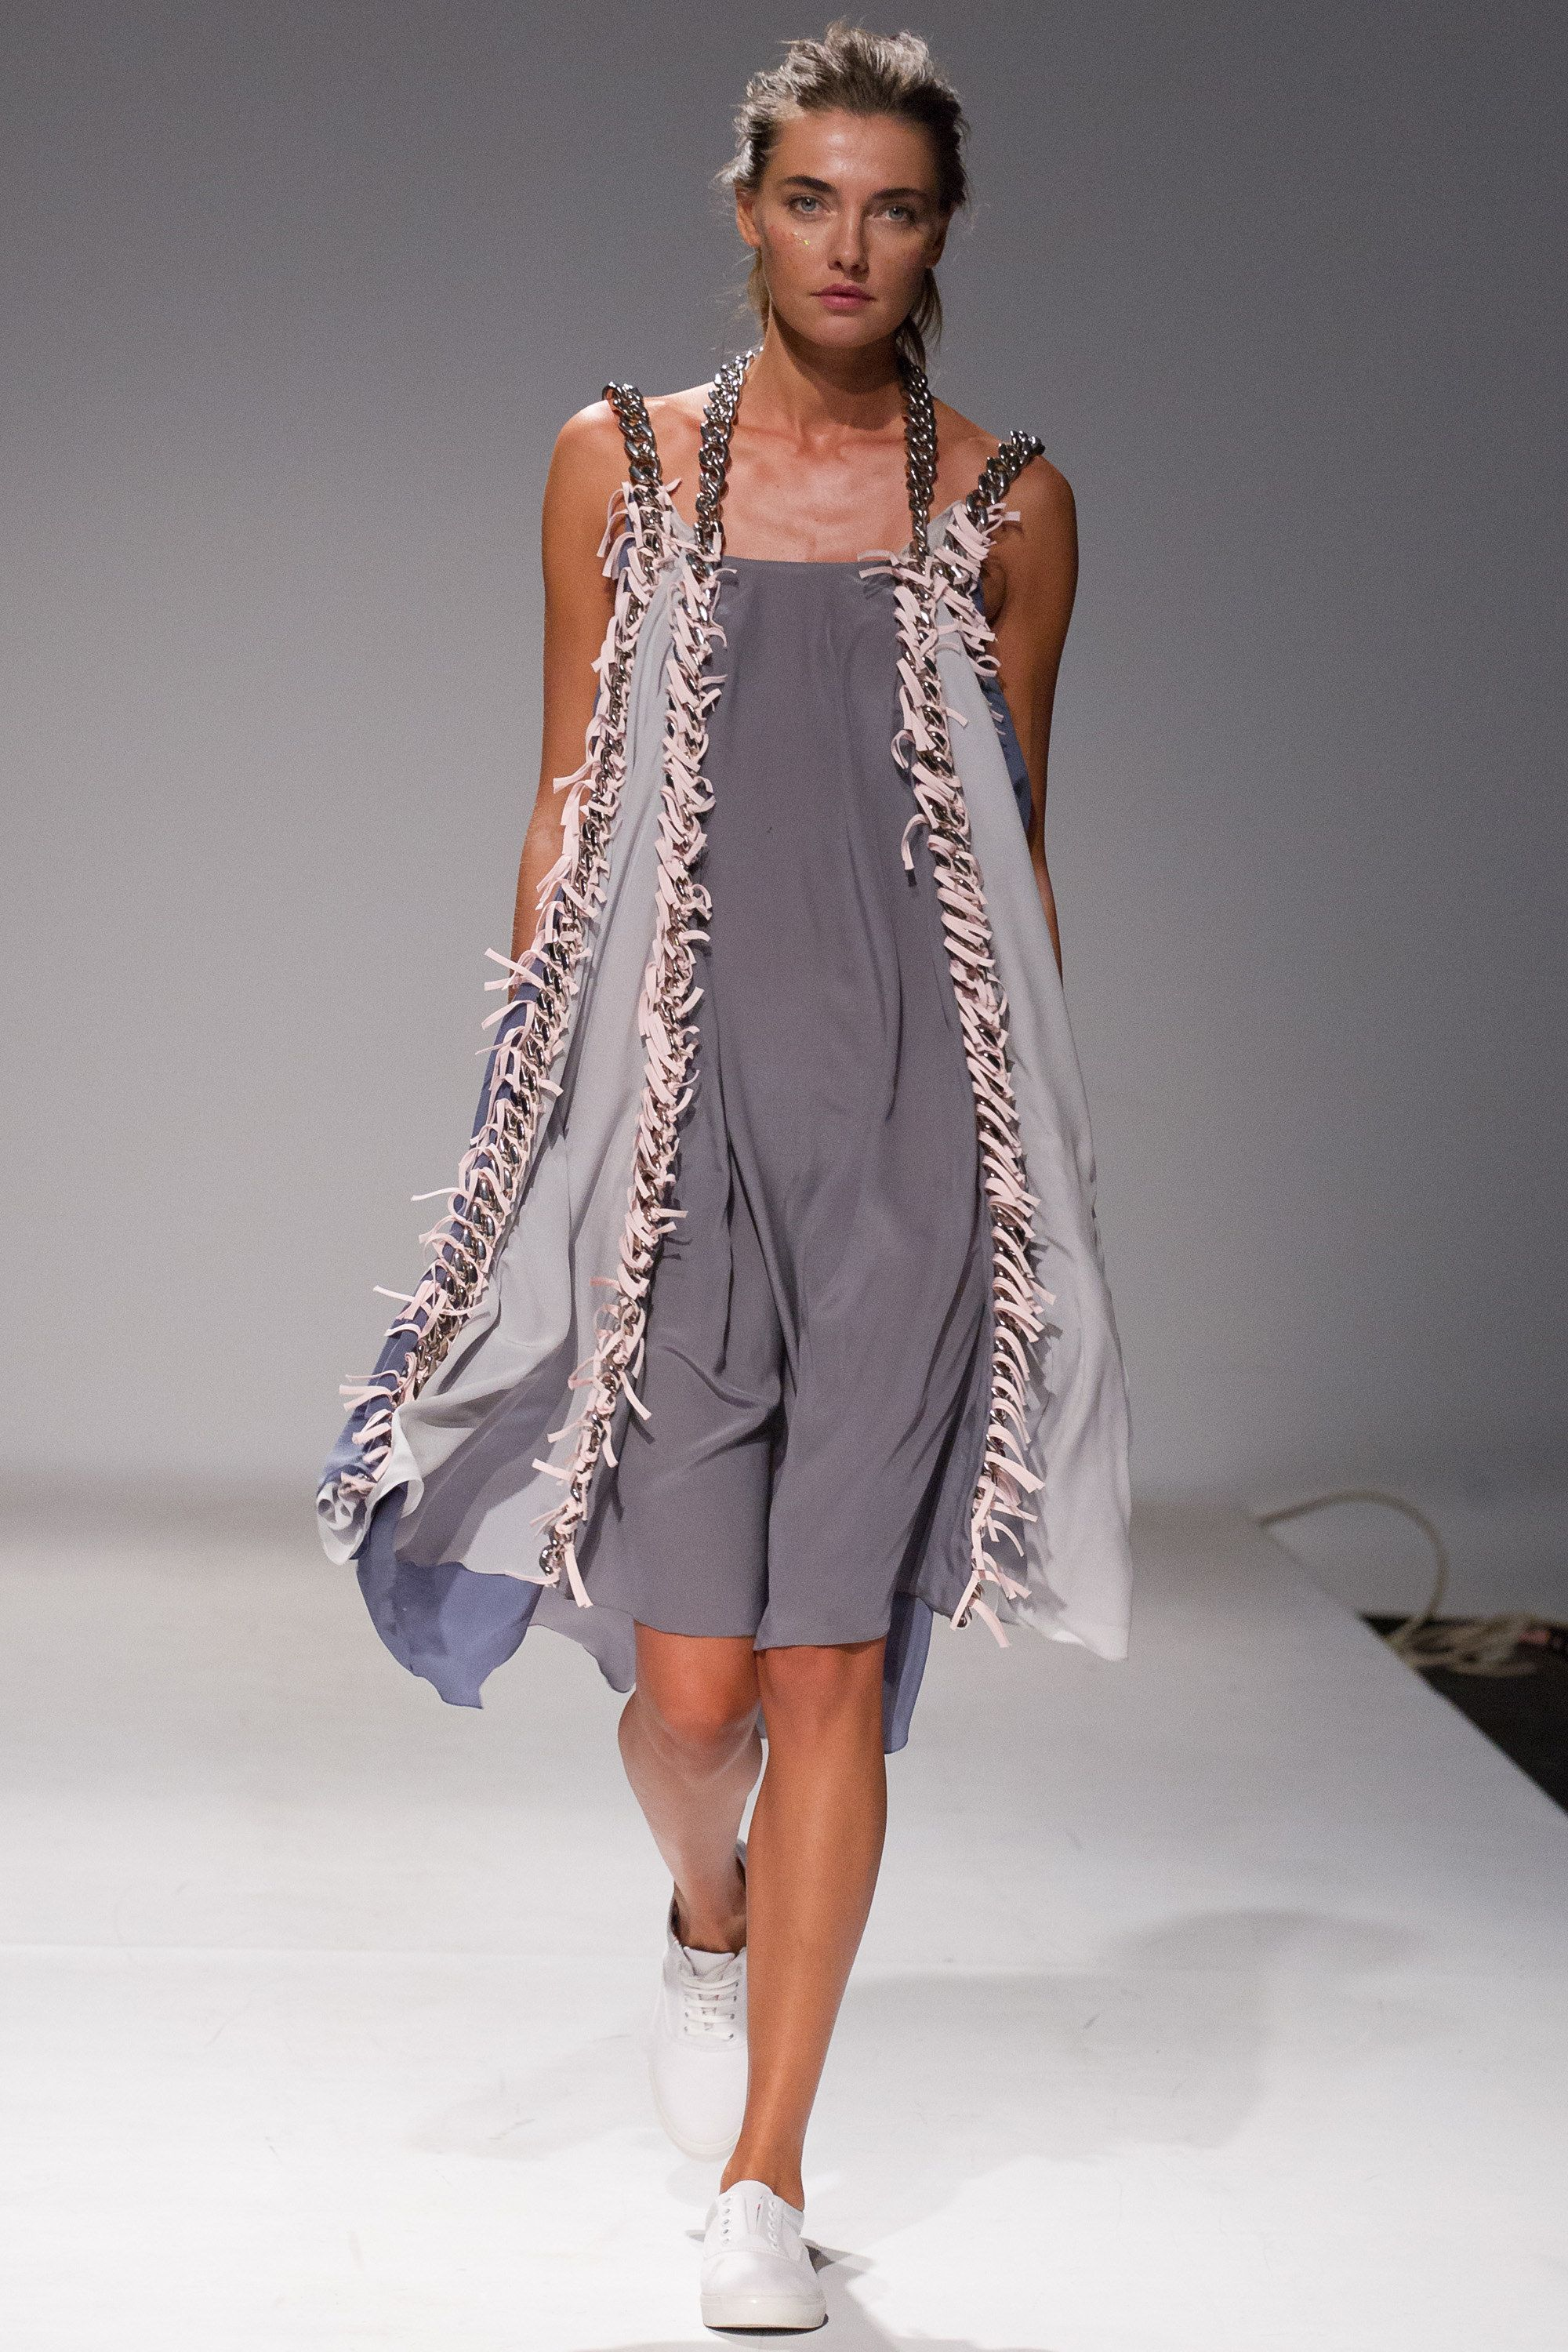 Pin On Ss Rtw Runway Shows